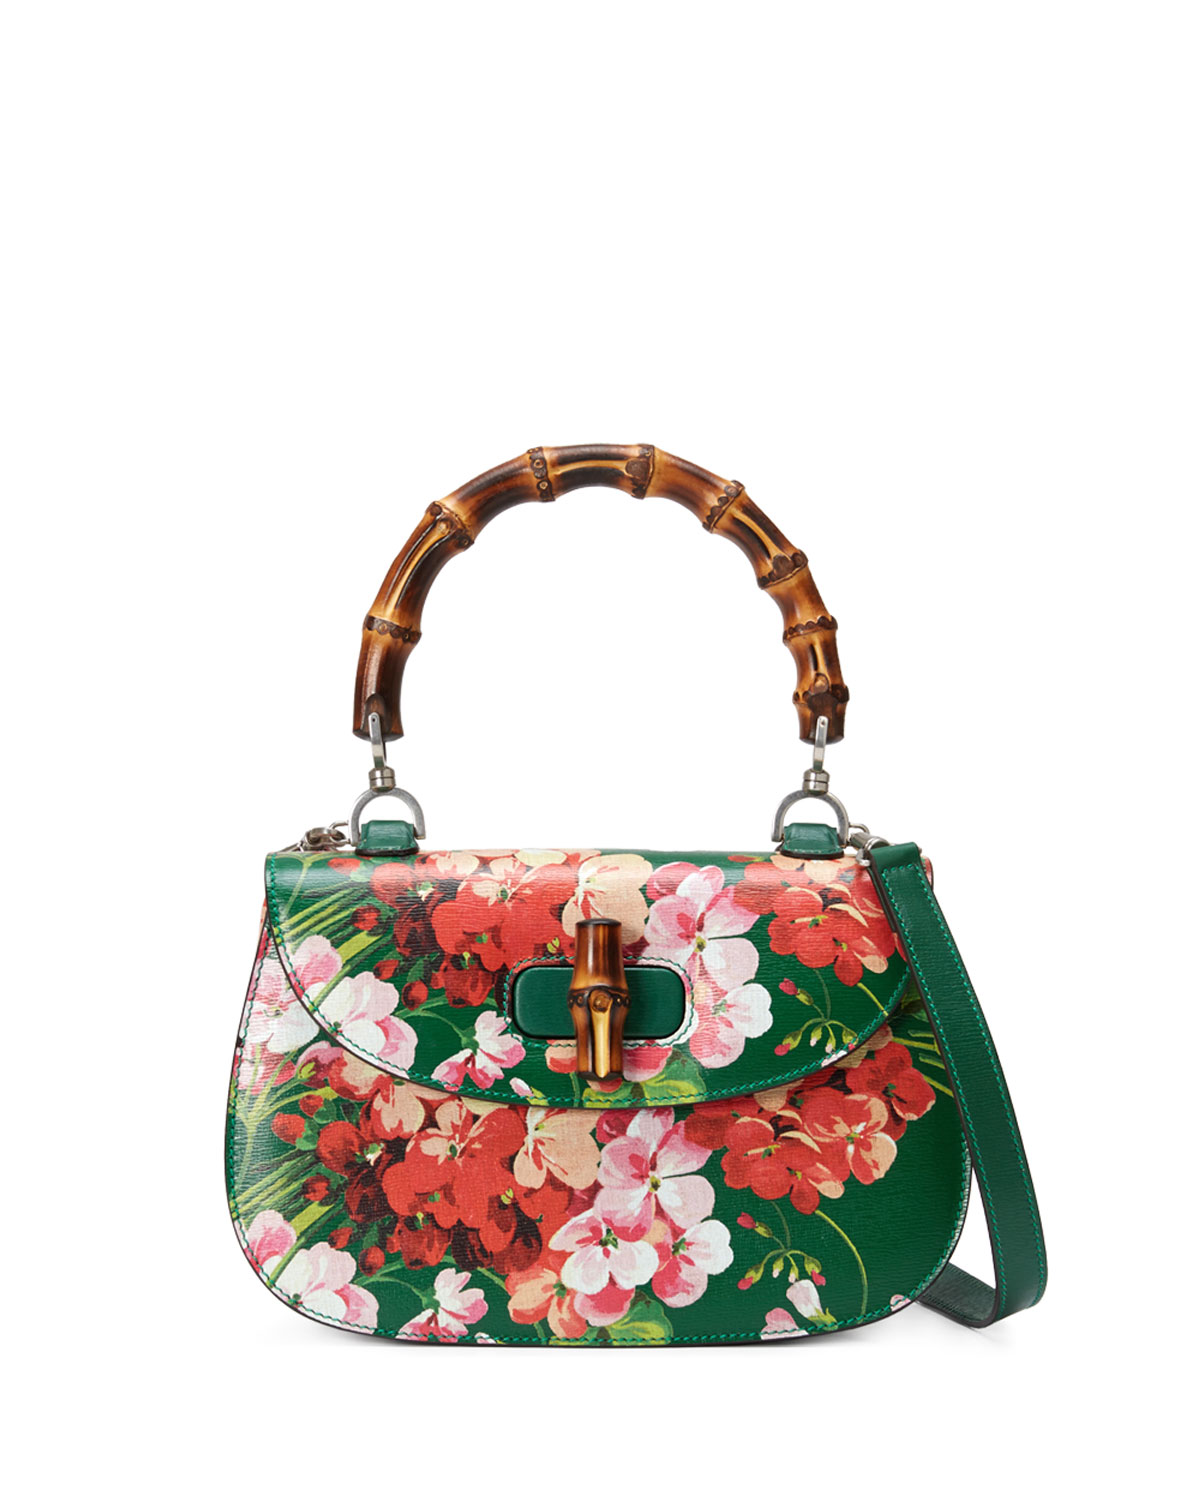 67b94e5221a Gucci Bamboo Classic Blooms Small Top-Handle Bag